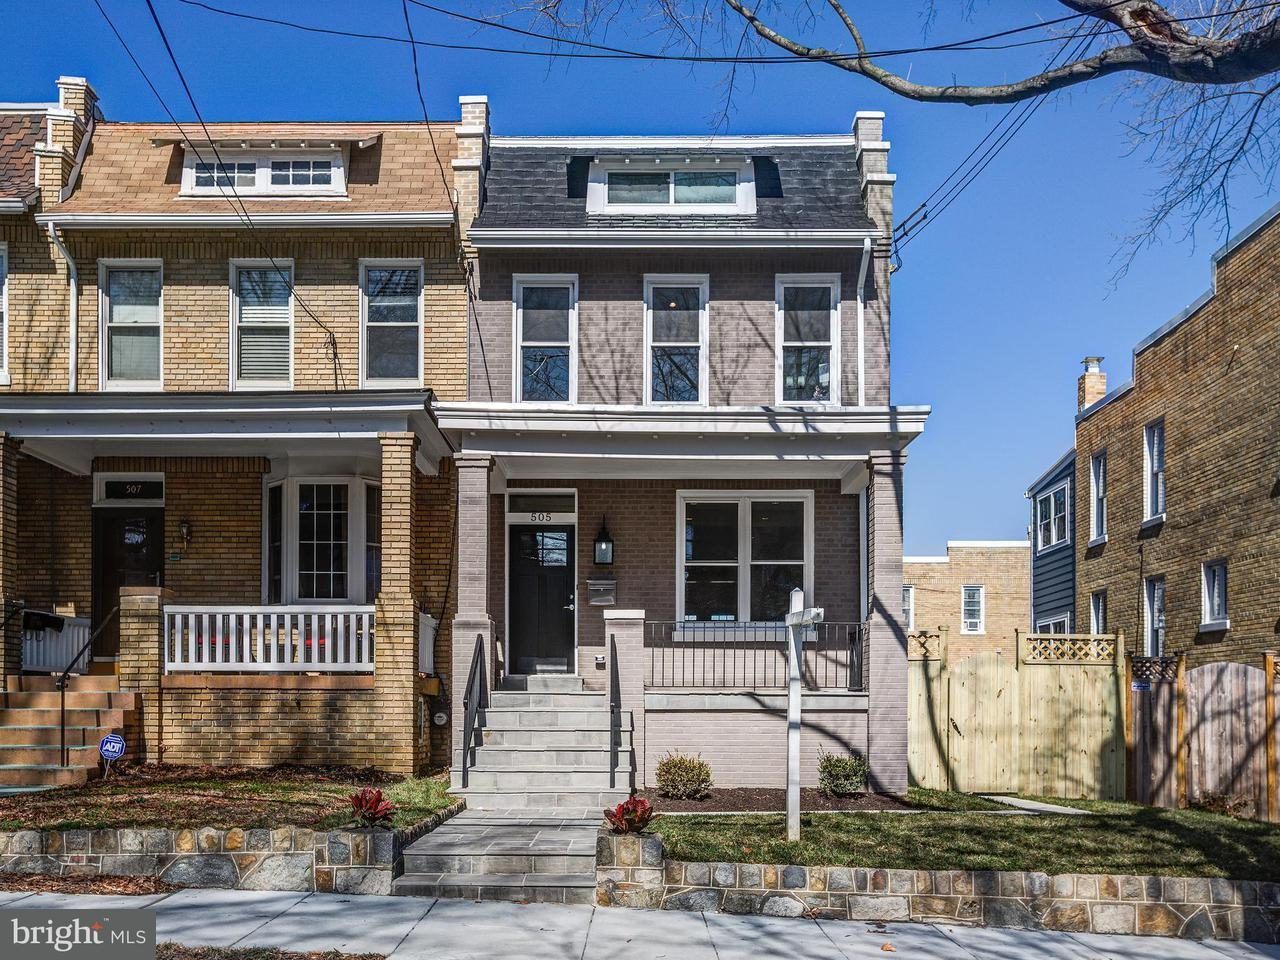 Townhouse for Sale at 505 Nicholson St Nw 505 Nicholson St Nw Washington, District Of Columbia 20011 United States